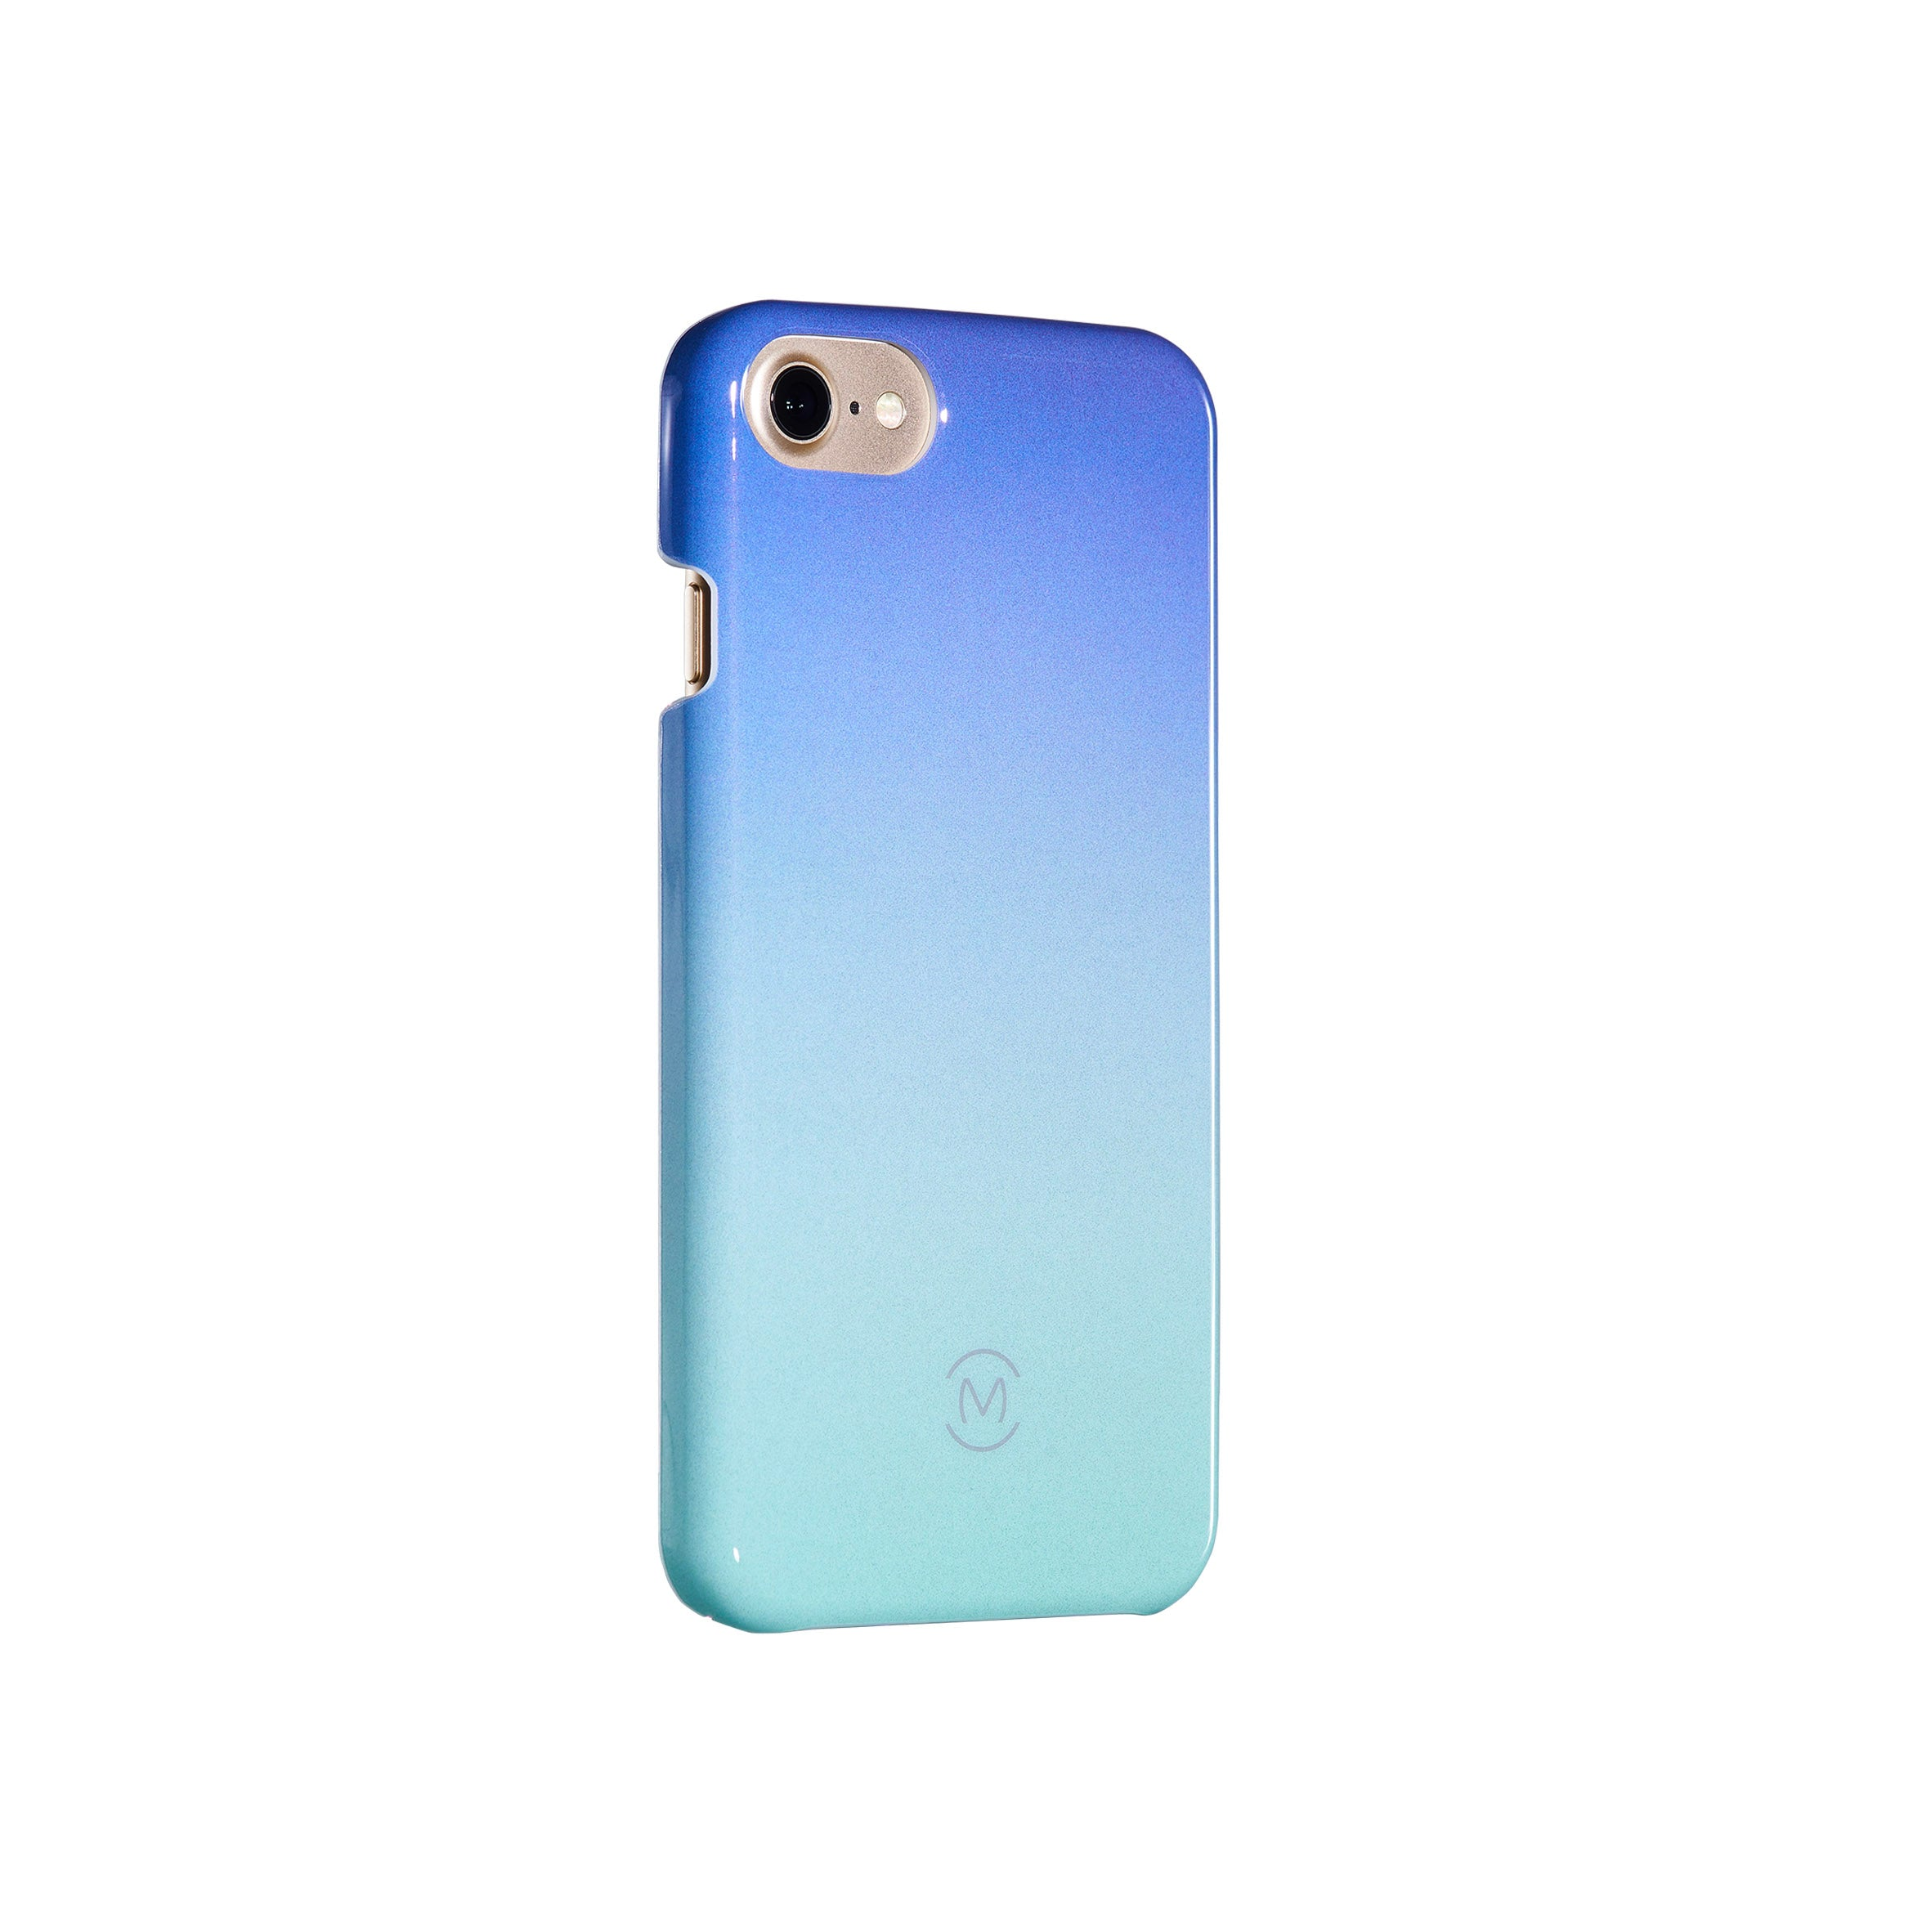 Blue-Turquoise Gradient Blue Atoll Recyclable Phone Case by Movement for iPhone 8, iPhone 7, iPhone 6s, and iPhone 6 (Left)